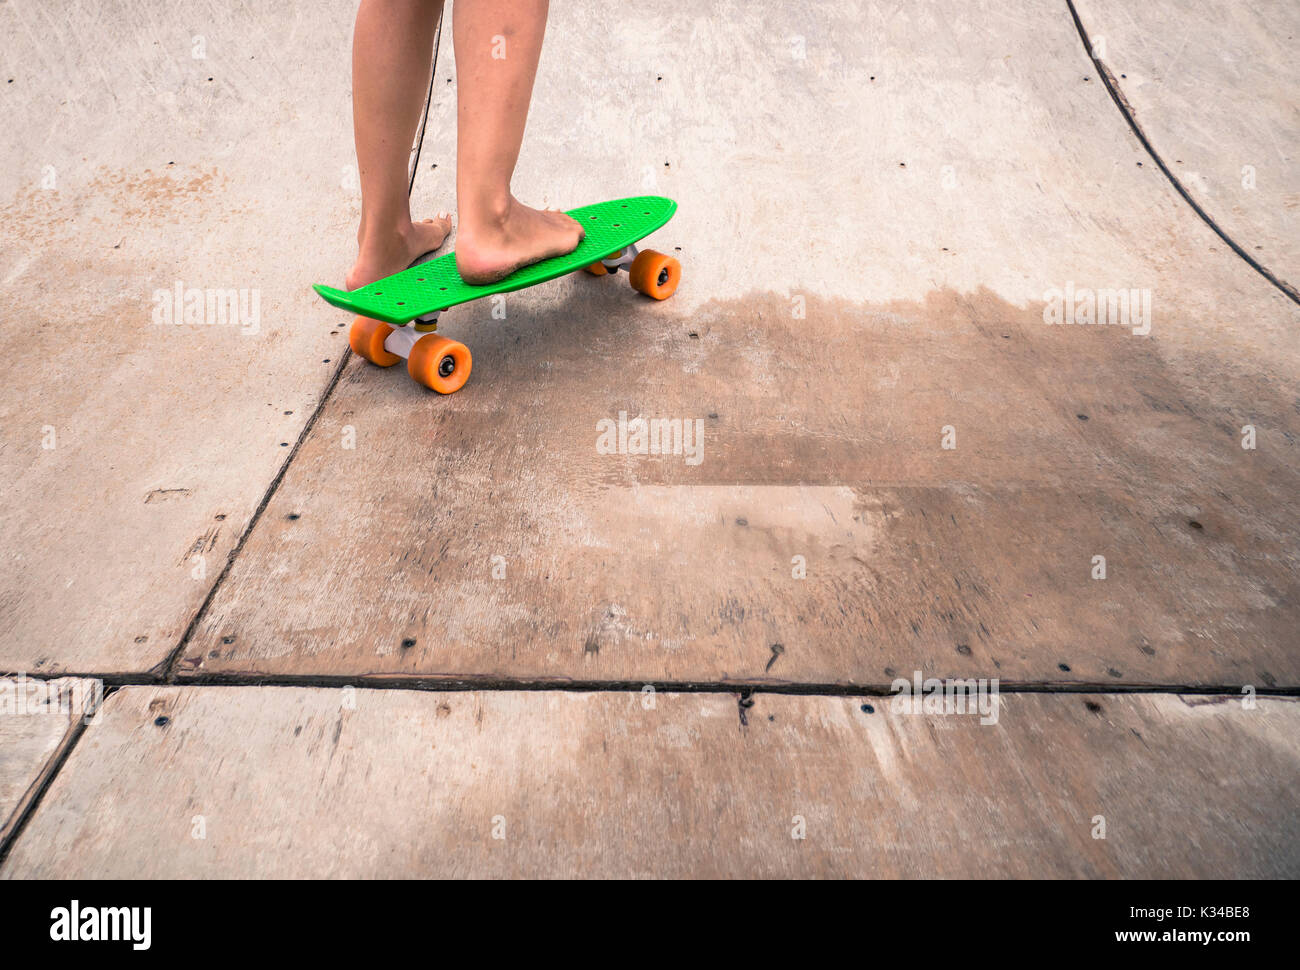 Woman Riding A Penny Board On A Wooden Half Pipe Stock Photo